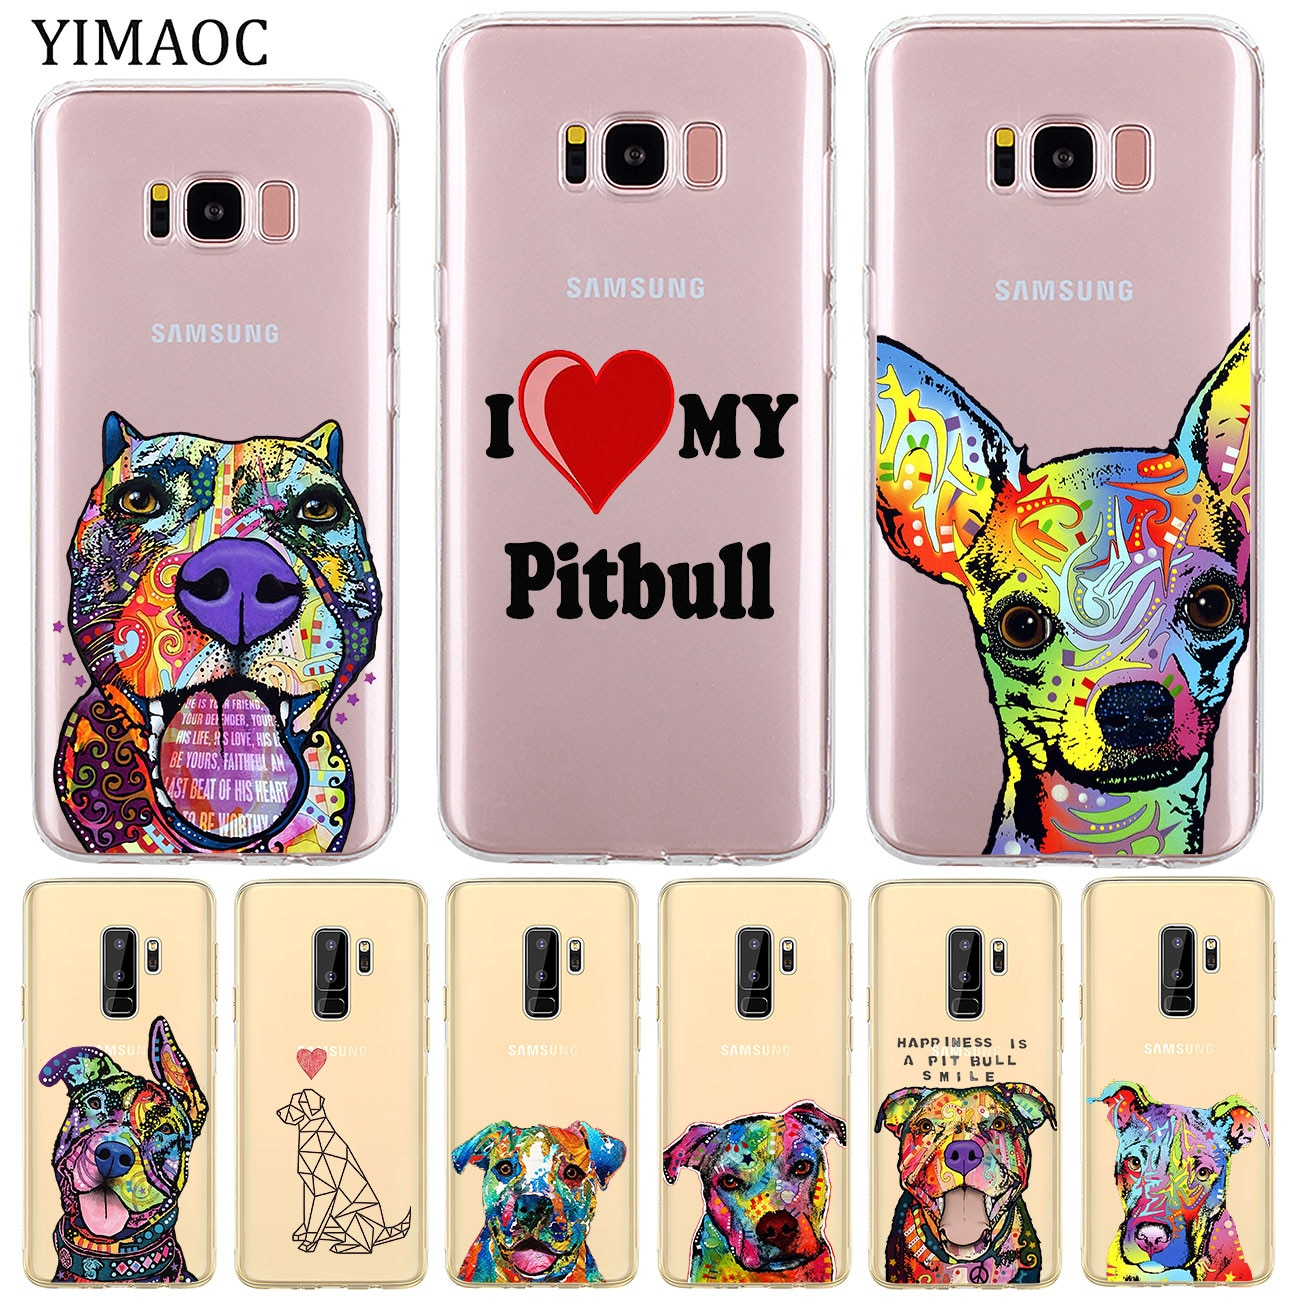 YIMAOC Pitbull dog Soft Silicone Phone Shell Case for Samsung Galaxy S10e S10 S9 S8 Note 10 Plus S7